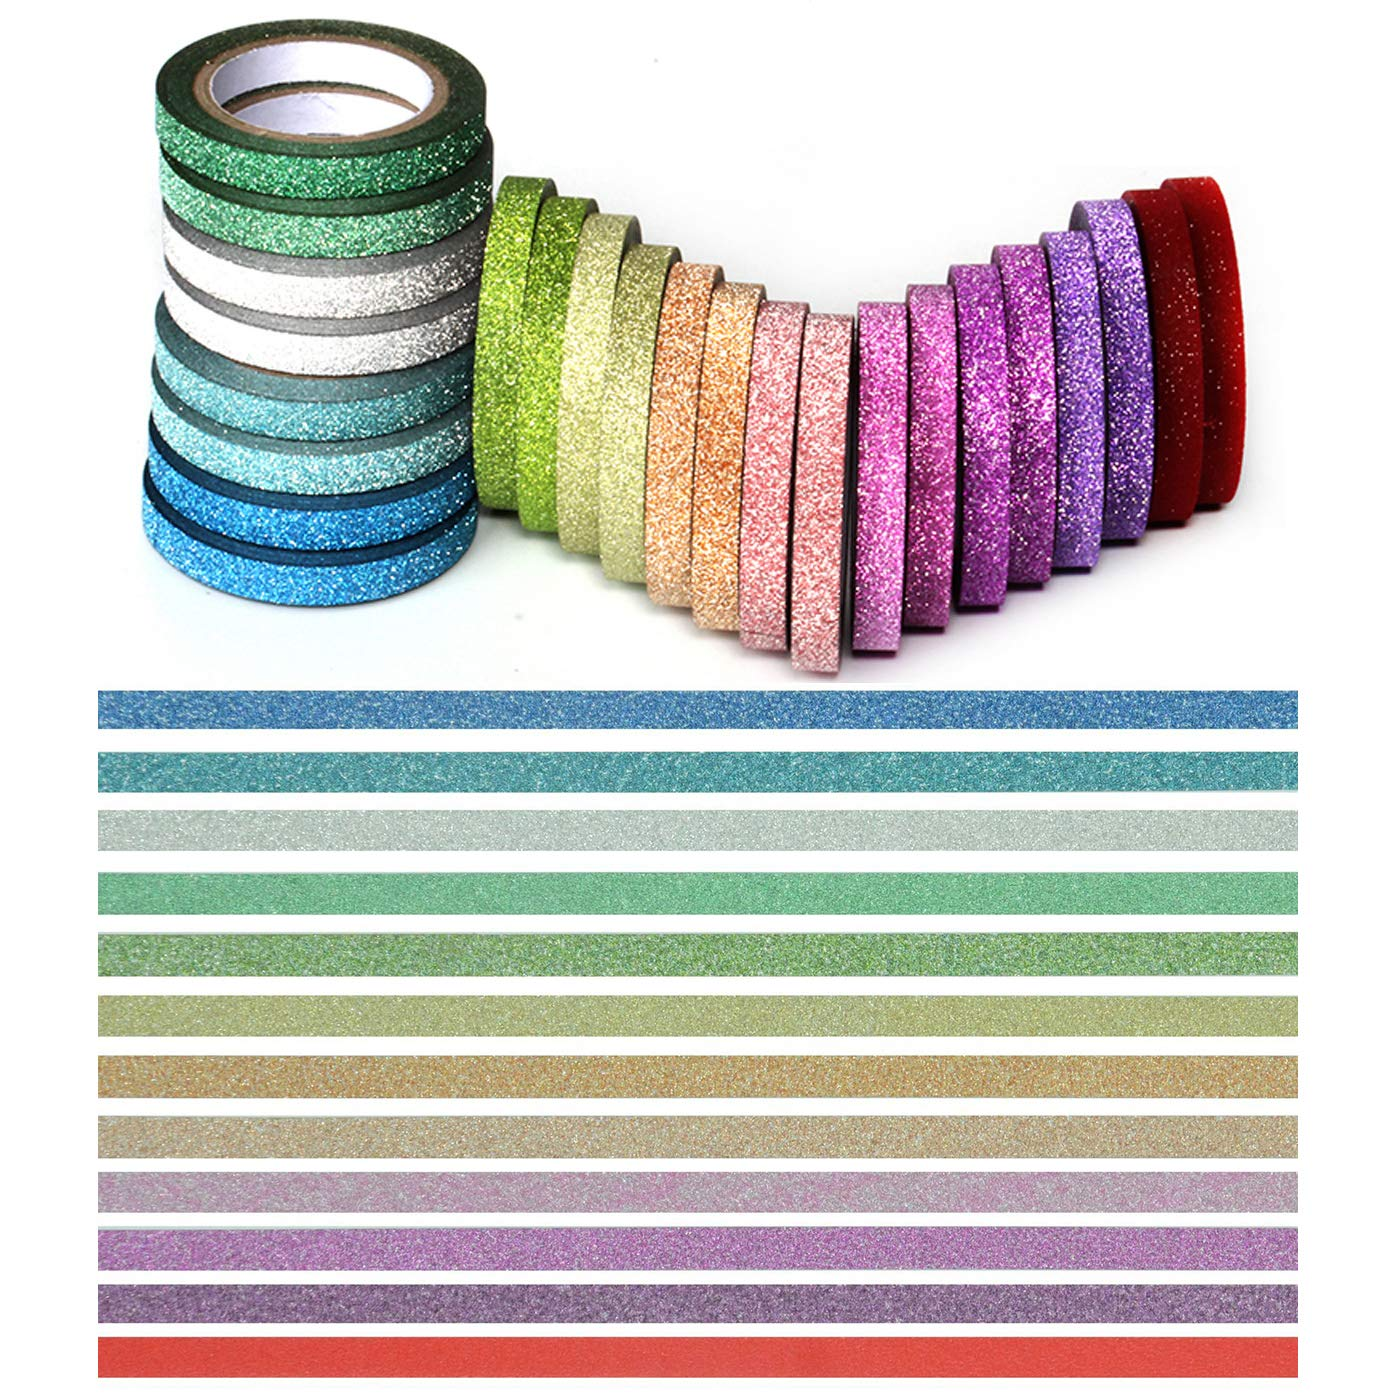 YUKUNTANG Skinny Glitter Paper Washi Tape Set 24 Rolls 12 Color Masking Tape for DIY Crafts Book Designs 4336847172